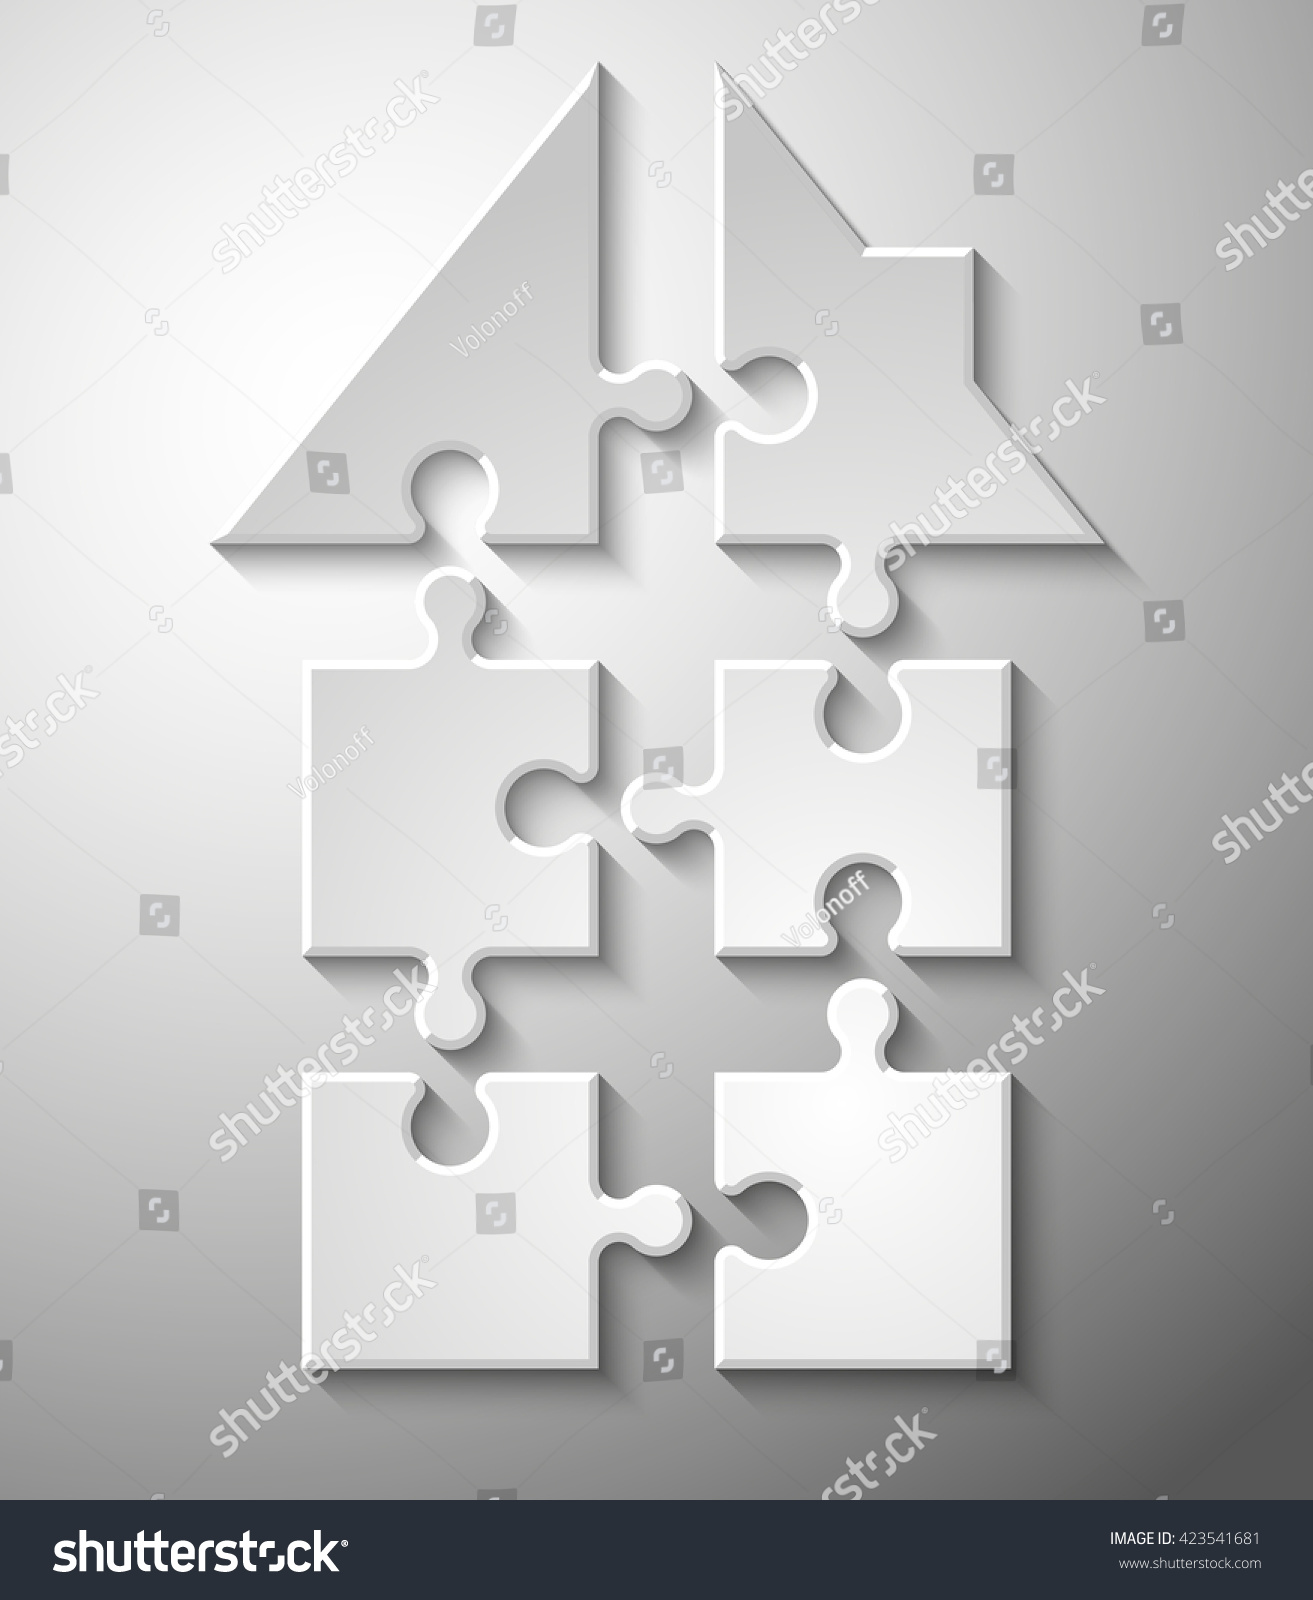 Puzzle HOUSE Six Piece Flat Infographic Stock Vector HD (Royalty ...